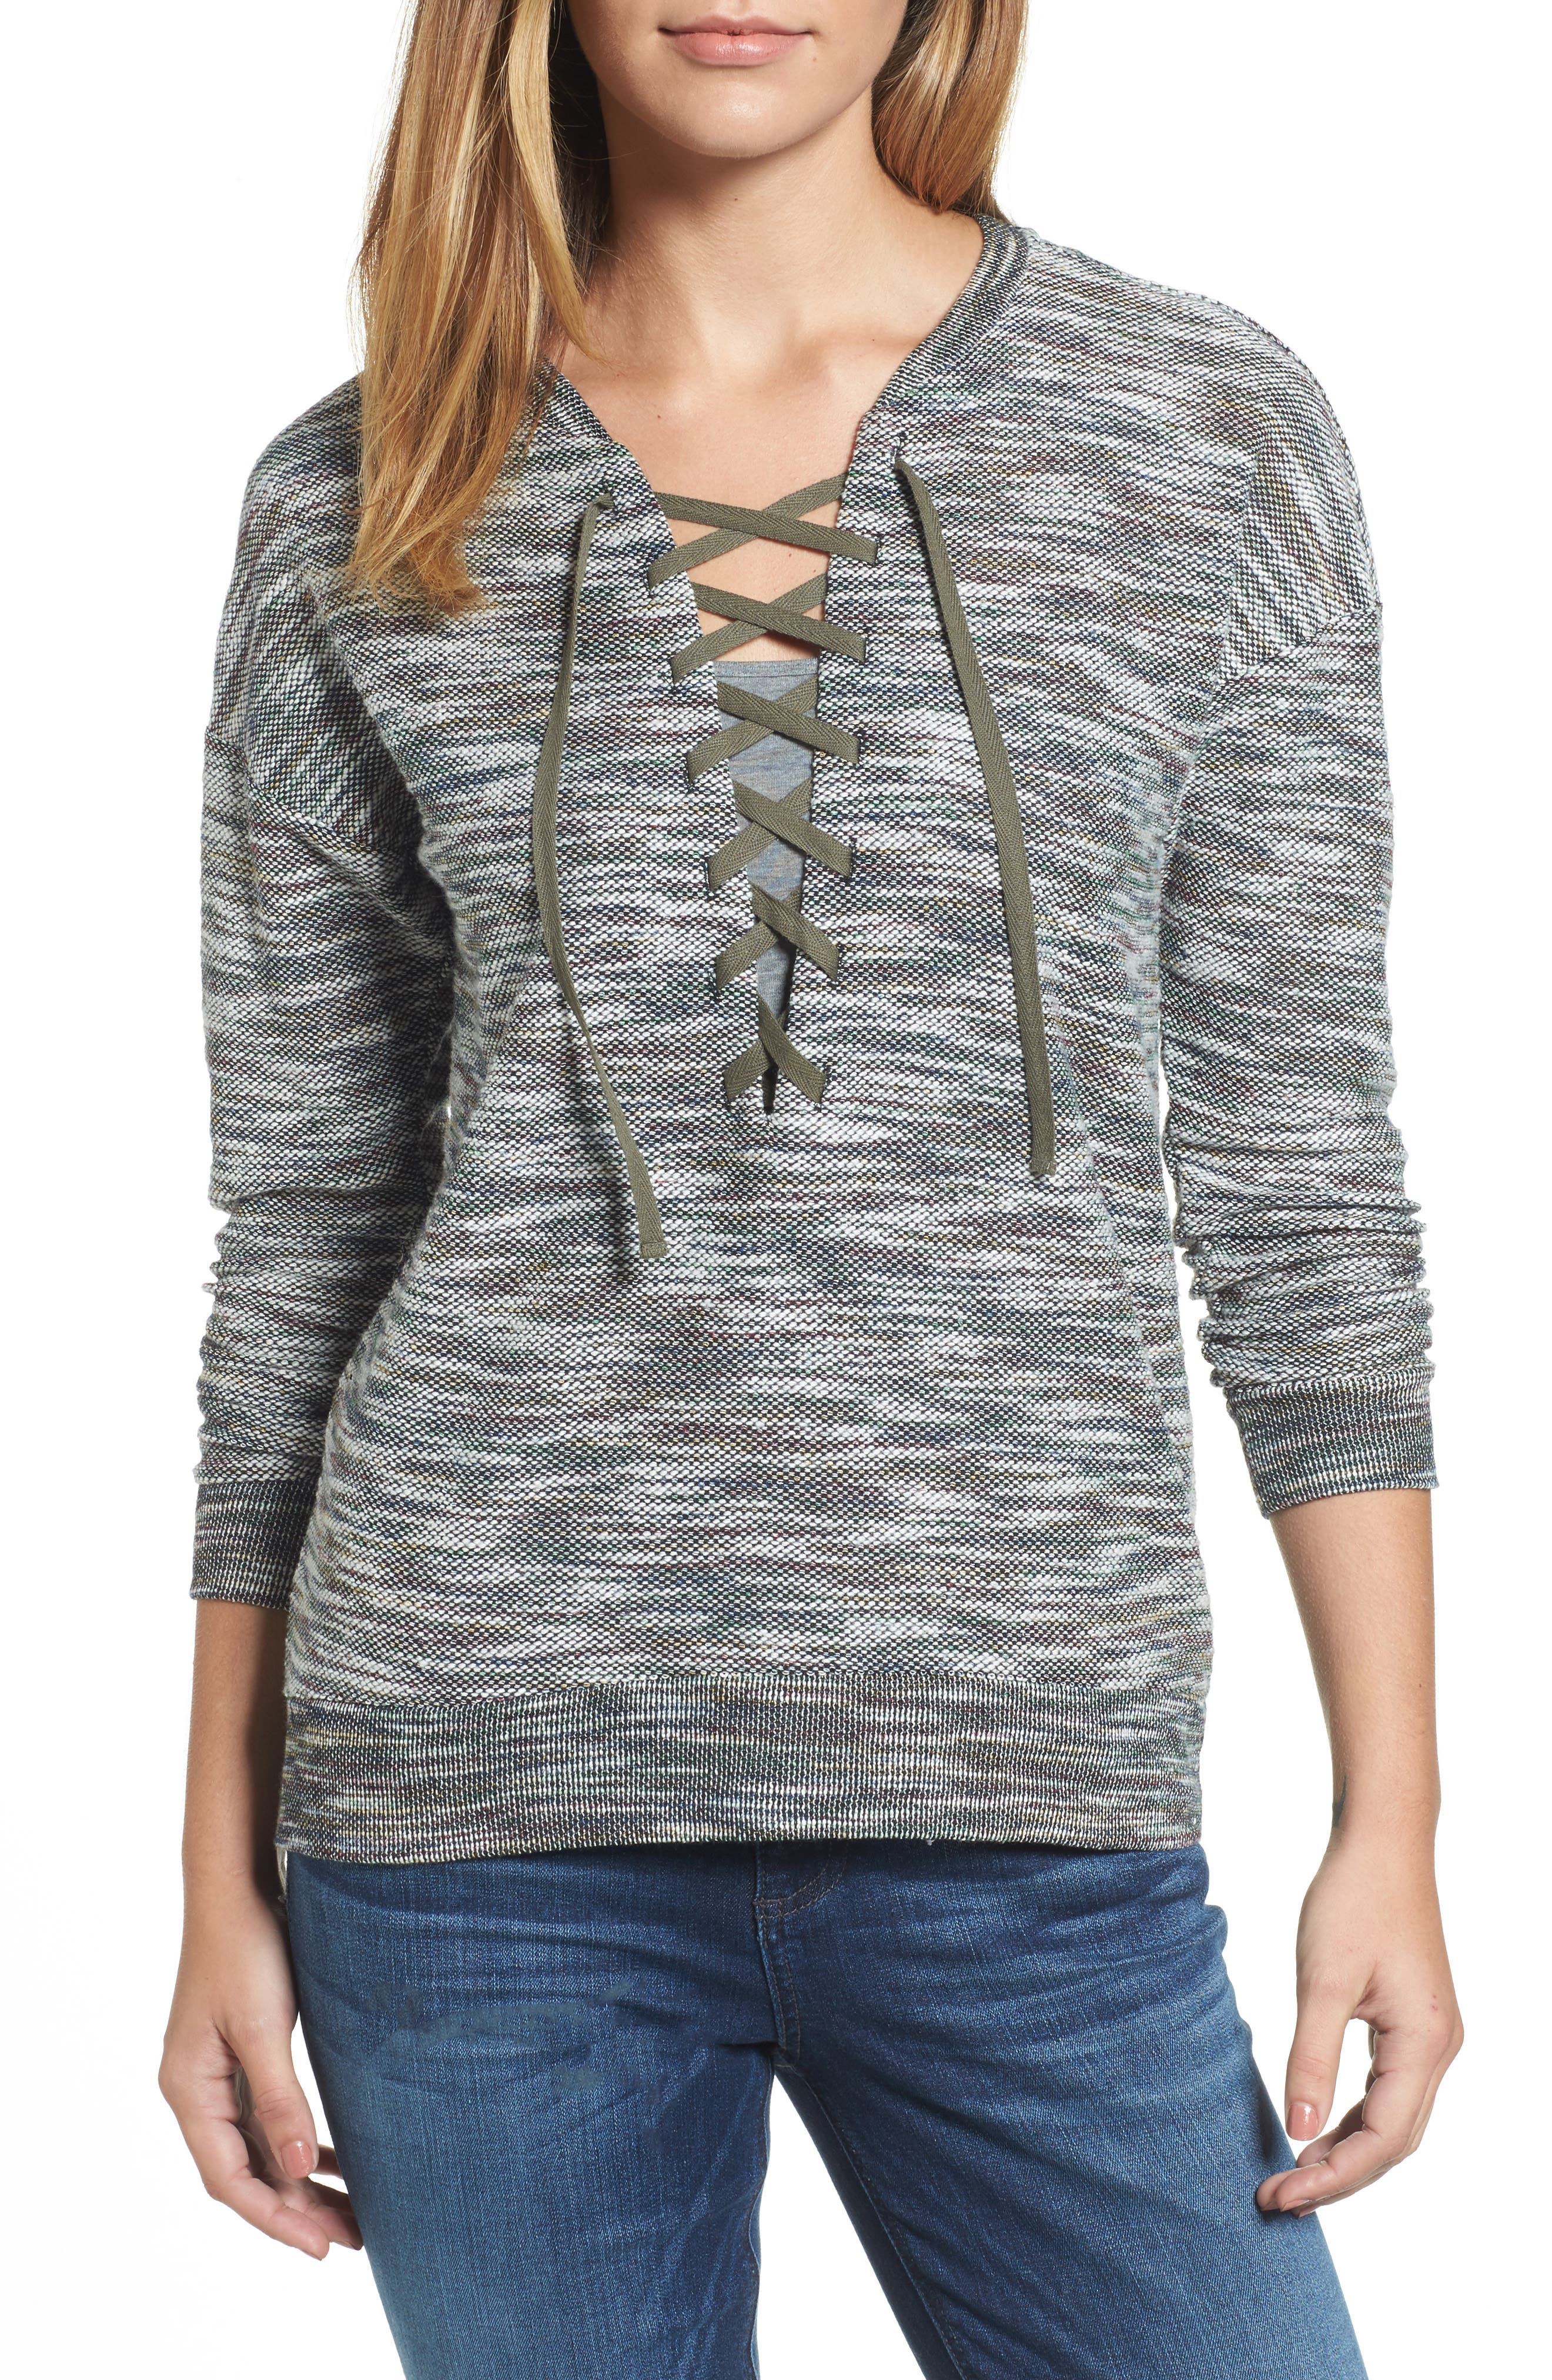 Everly Lace-Up Sweater,                             Main thumbnail 1, color,                             310